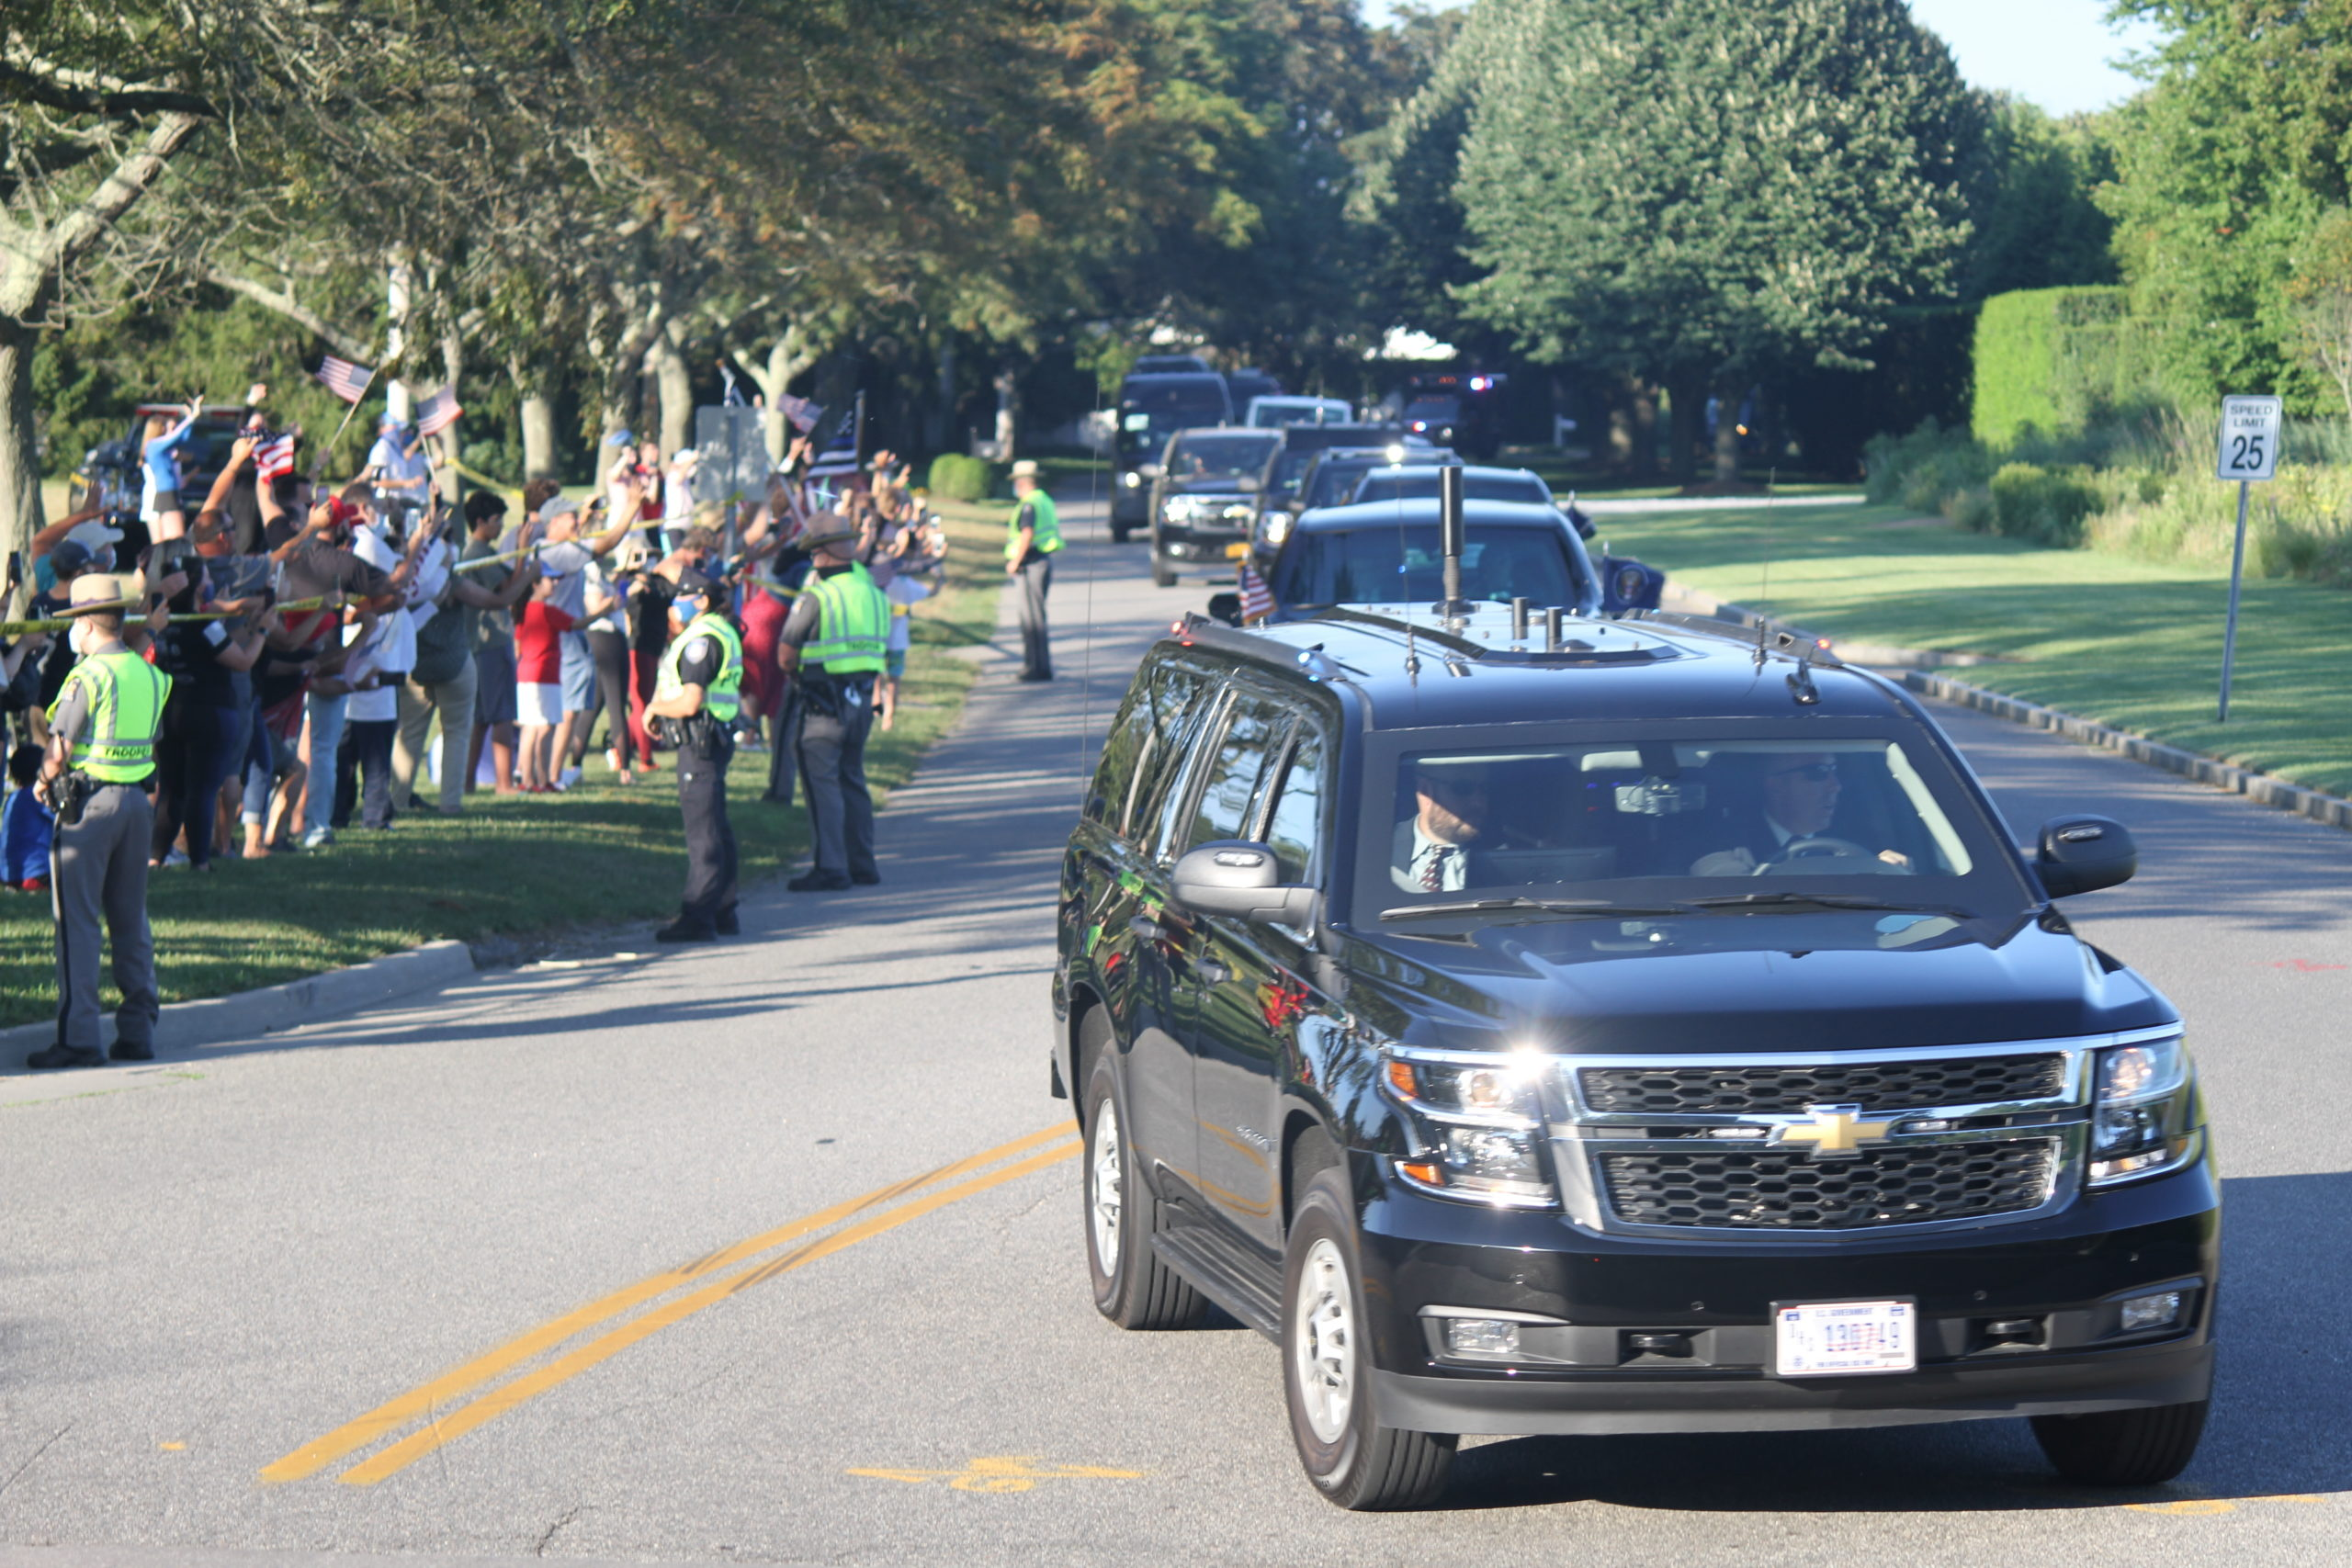 The president's motorcade and police escorts roll down Wickapogue Road in Southampton Village.